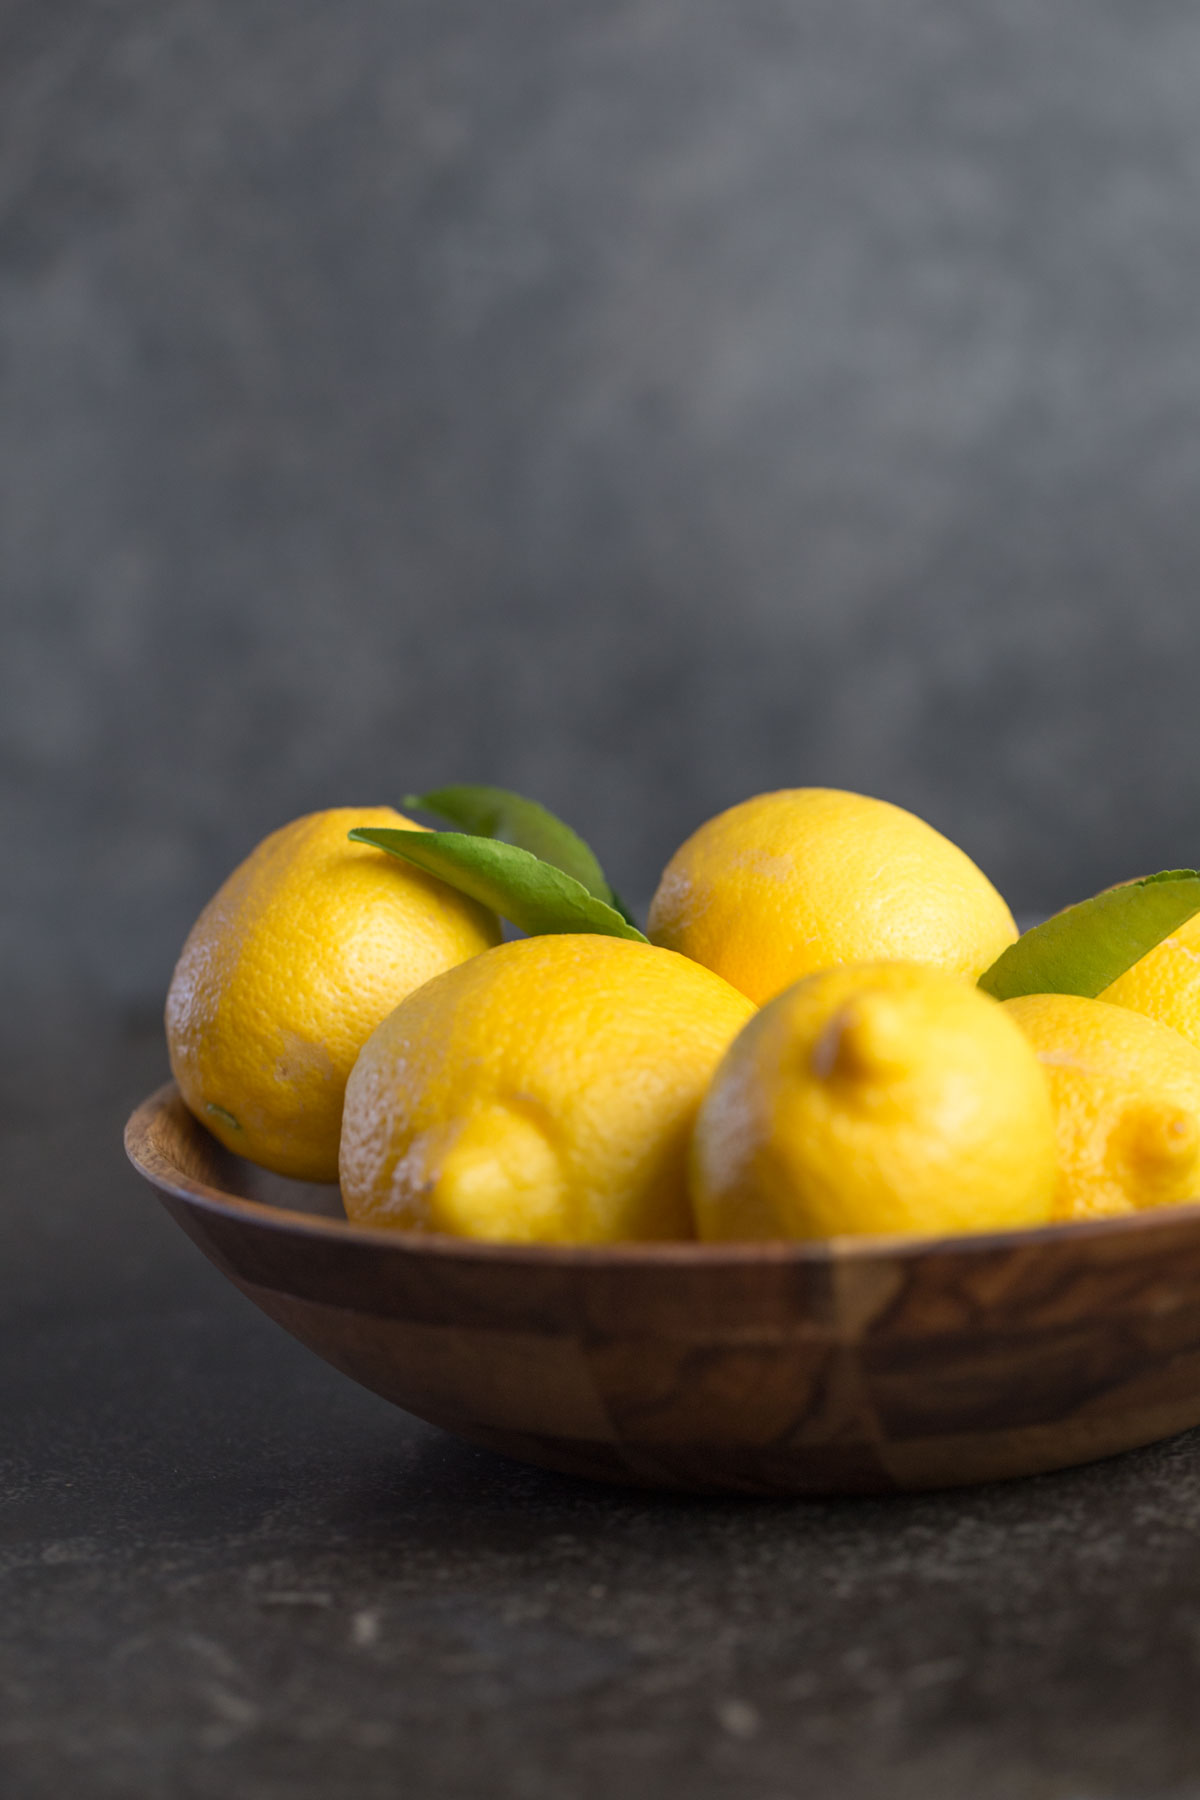 Wooden bowl of lemons with leaves attached from the front view with a dark grey background.